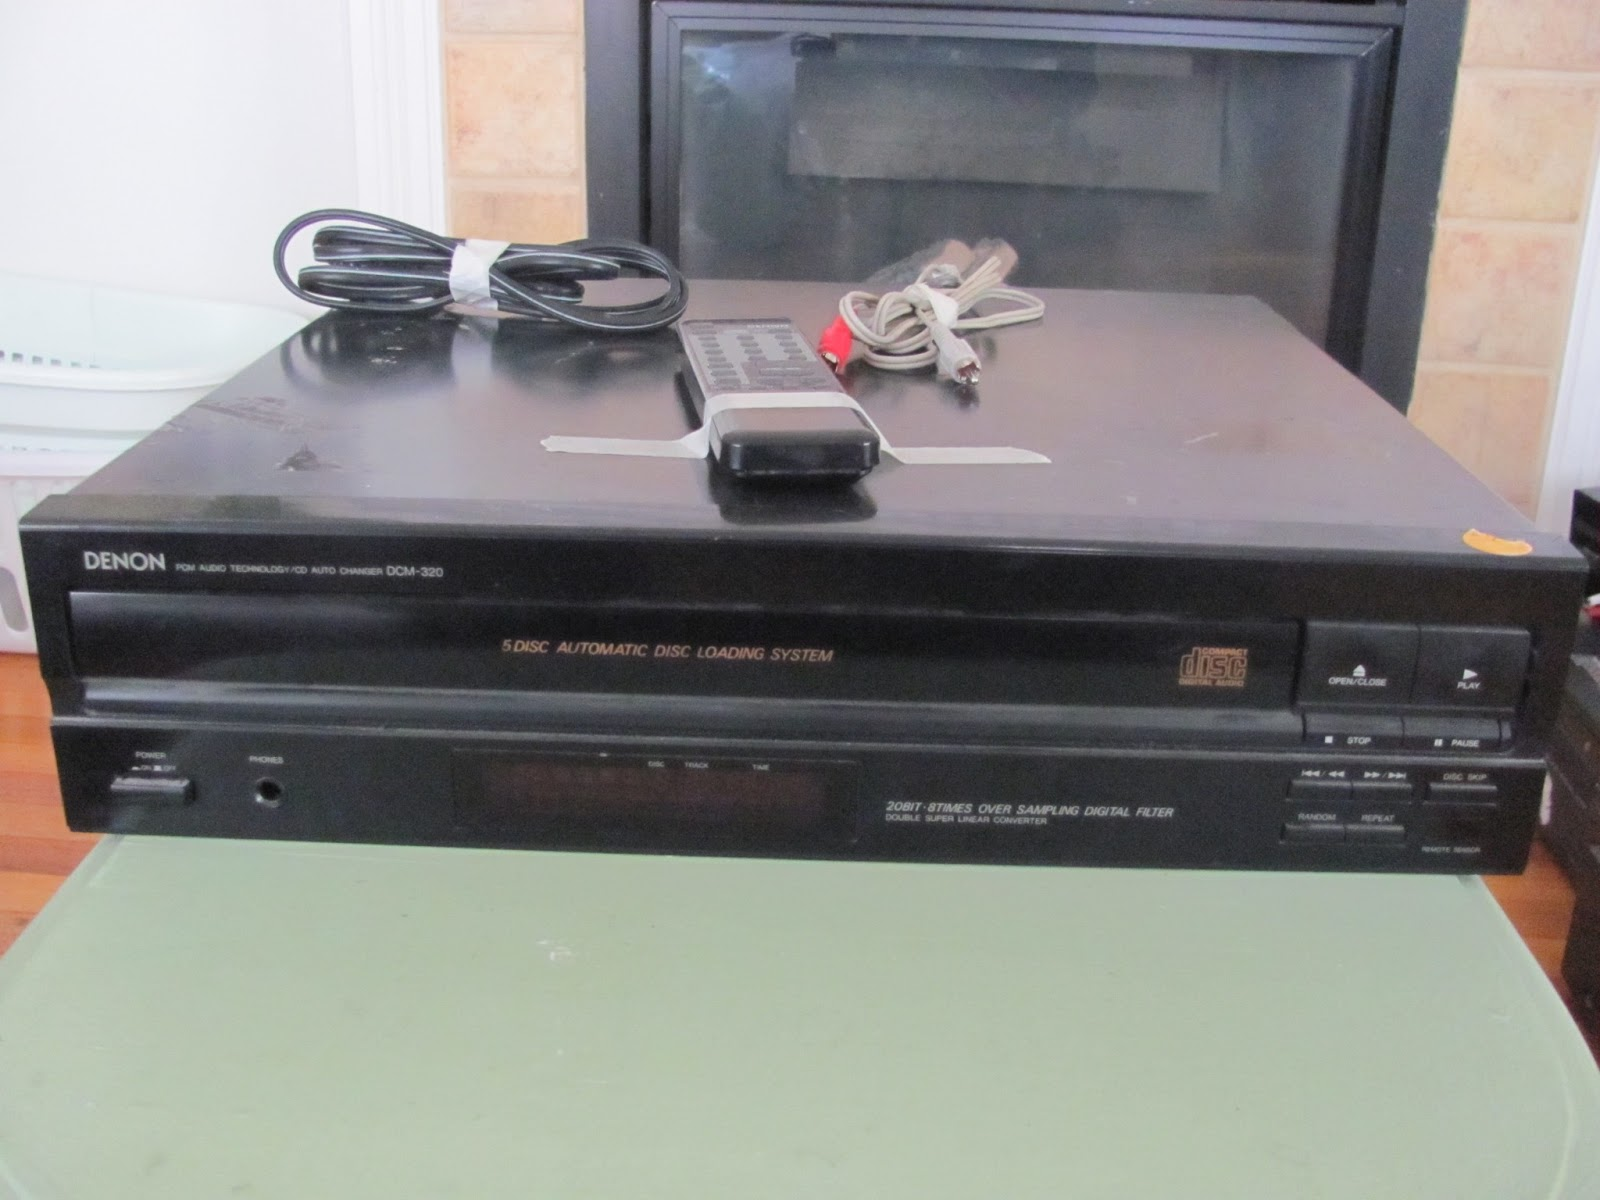 Denon 5-Disc CD changer on display before being sold on Craigslist